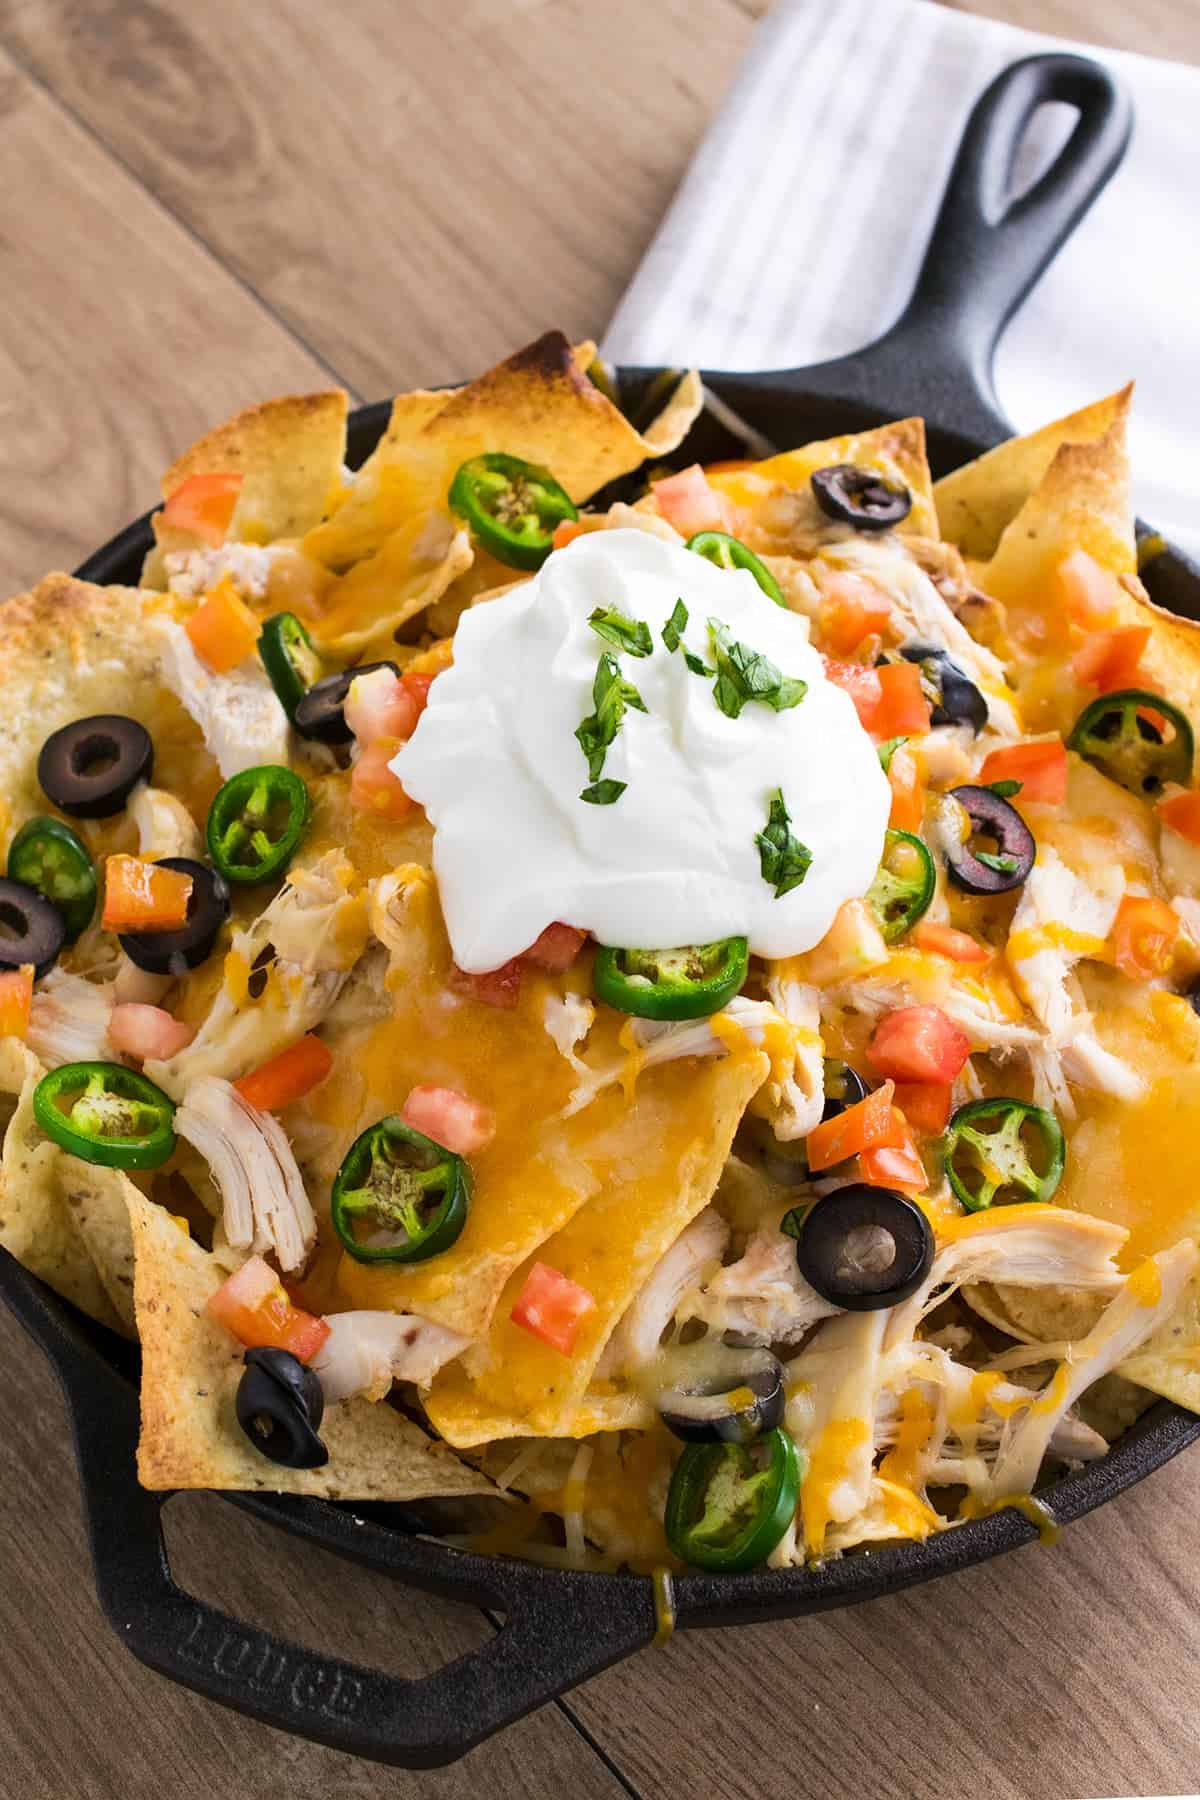 Shredded Chicken Nachos topped with melted cheese, tomatoes, black olives, jalapeno, and sour cream served in cast iron skillet.